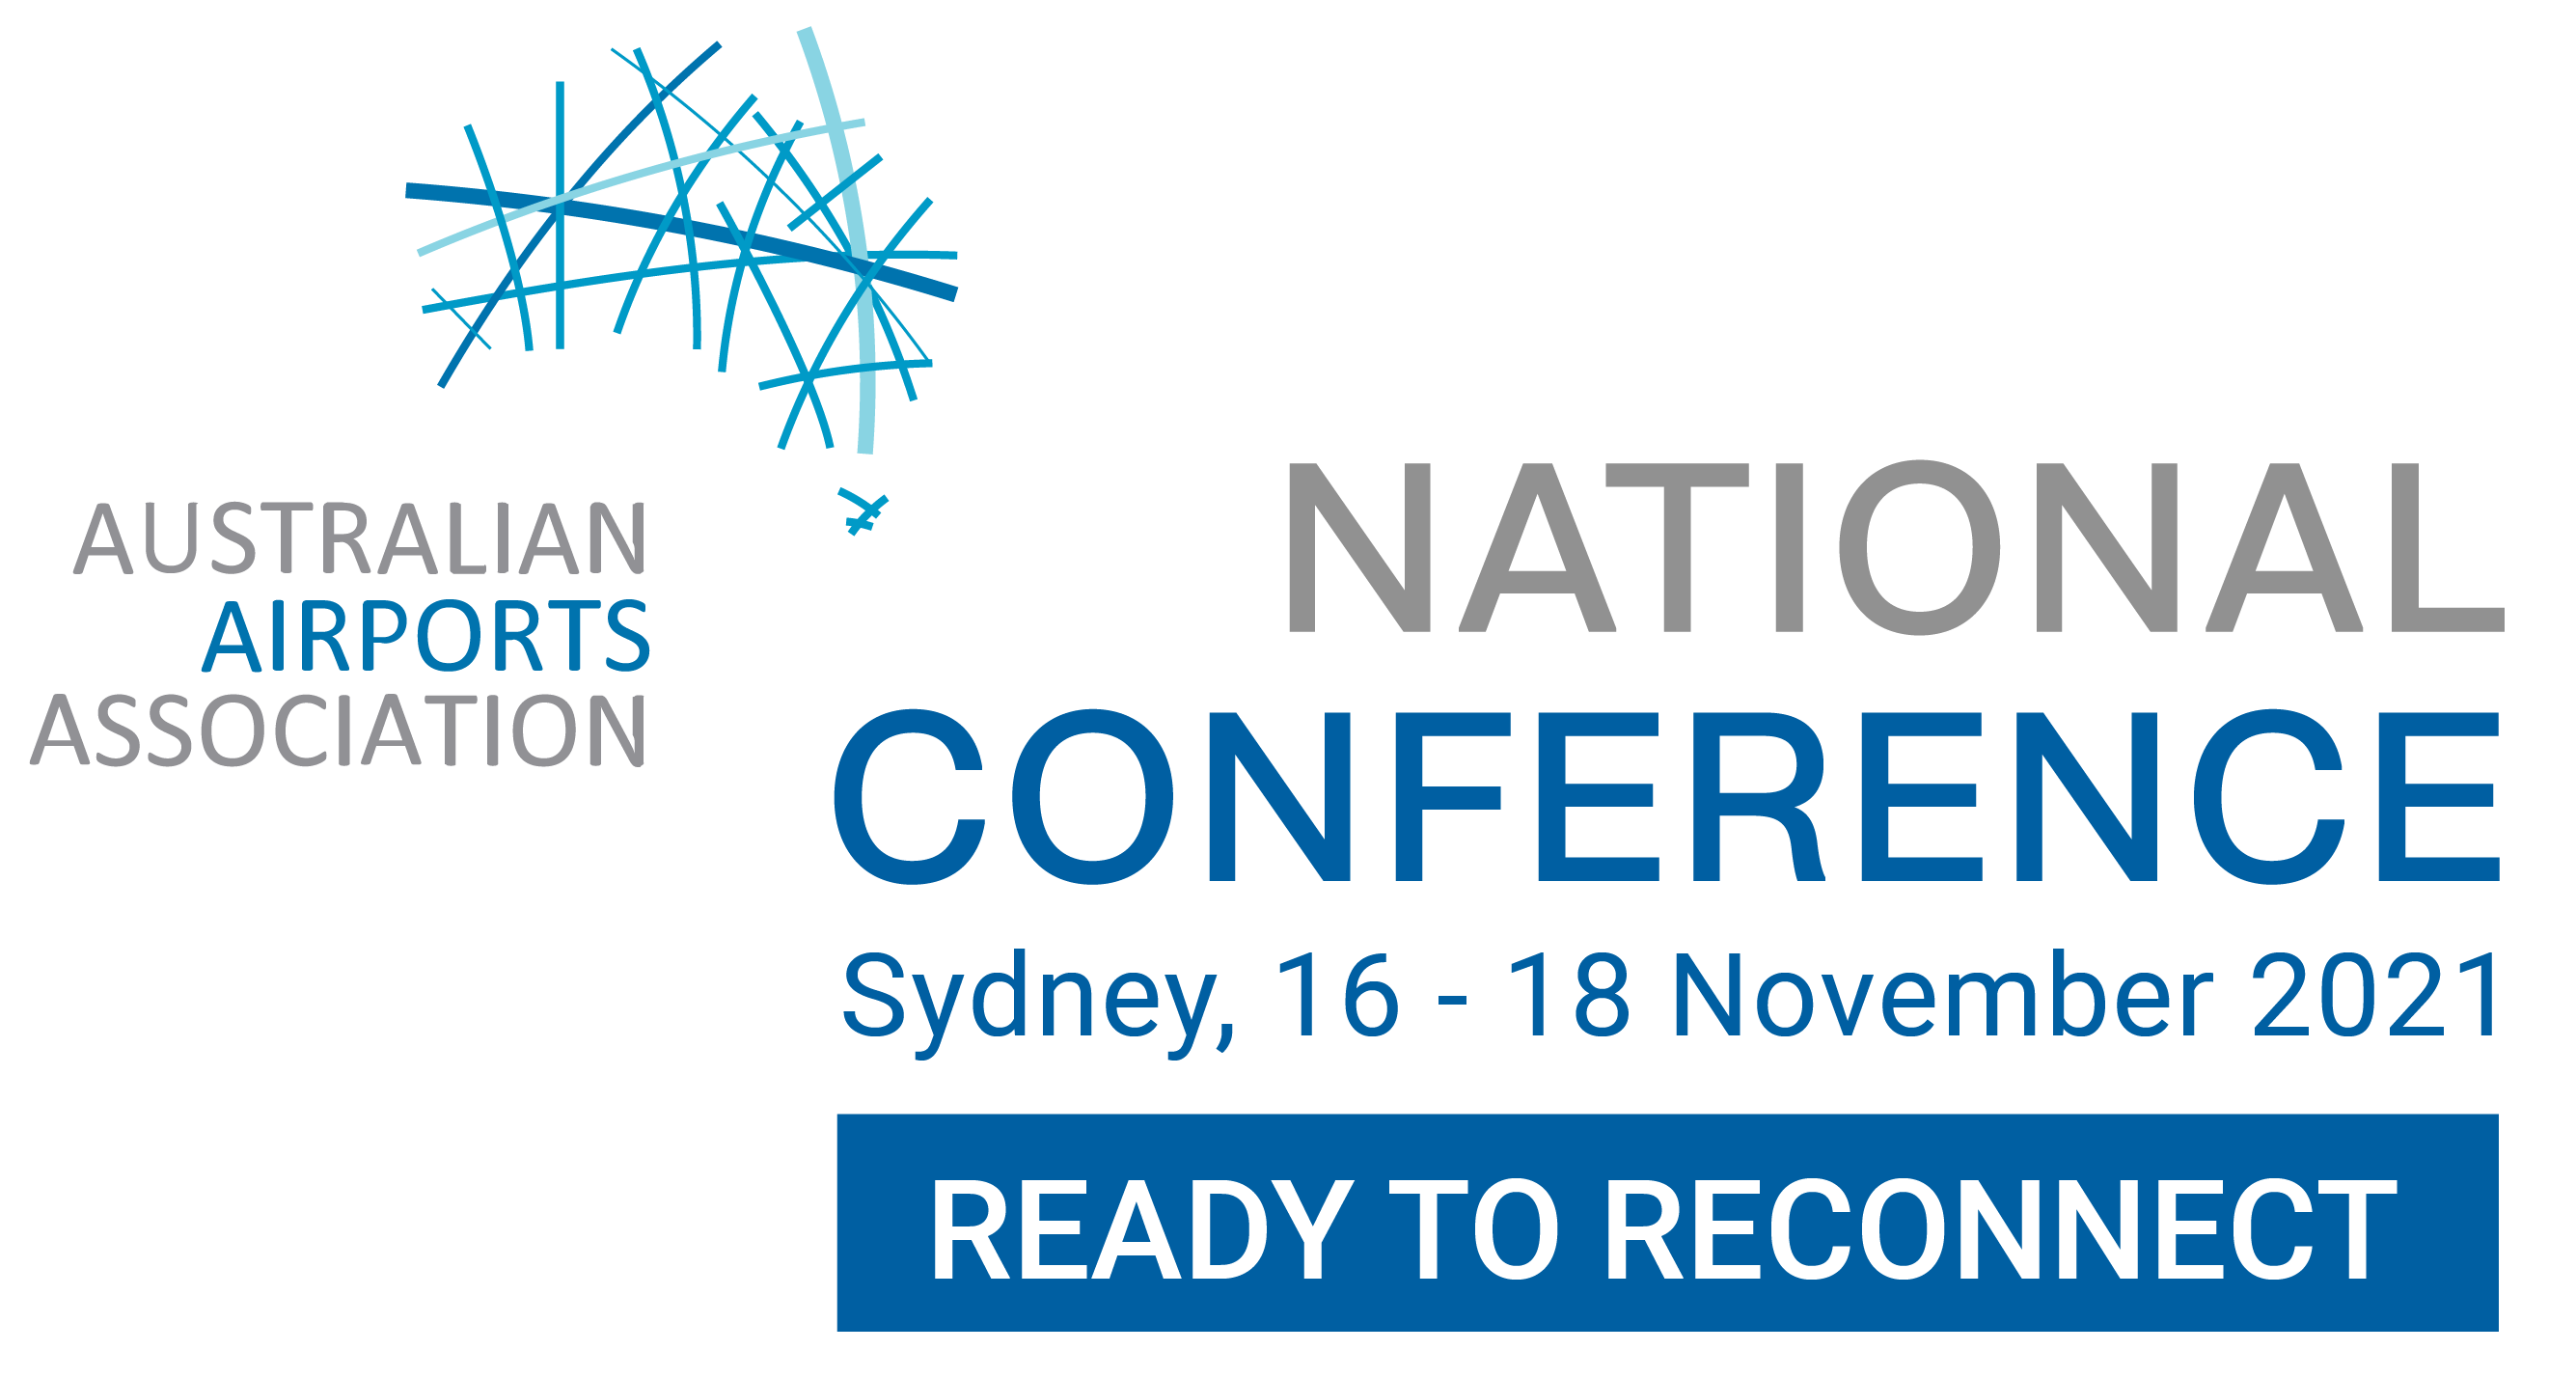 Australian Airports Association National Conference